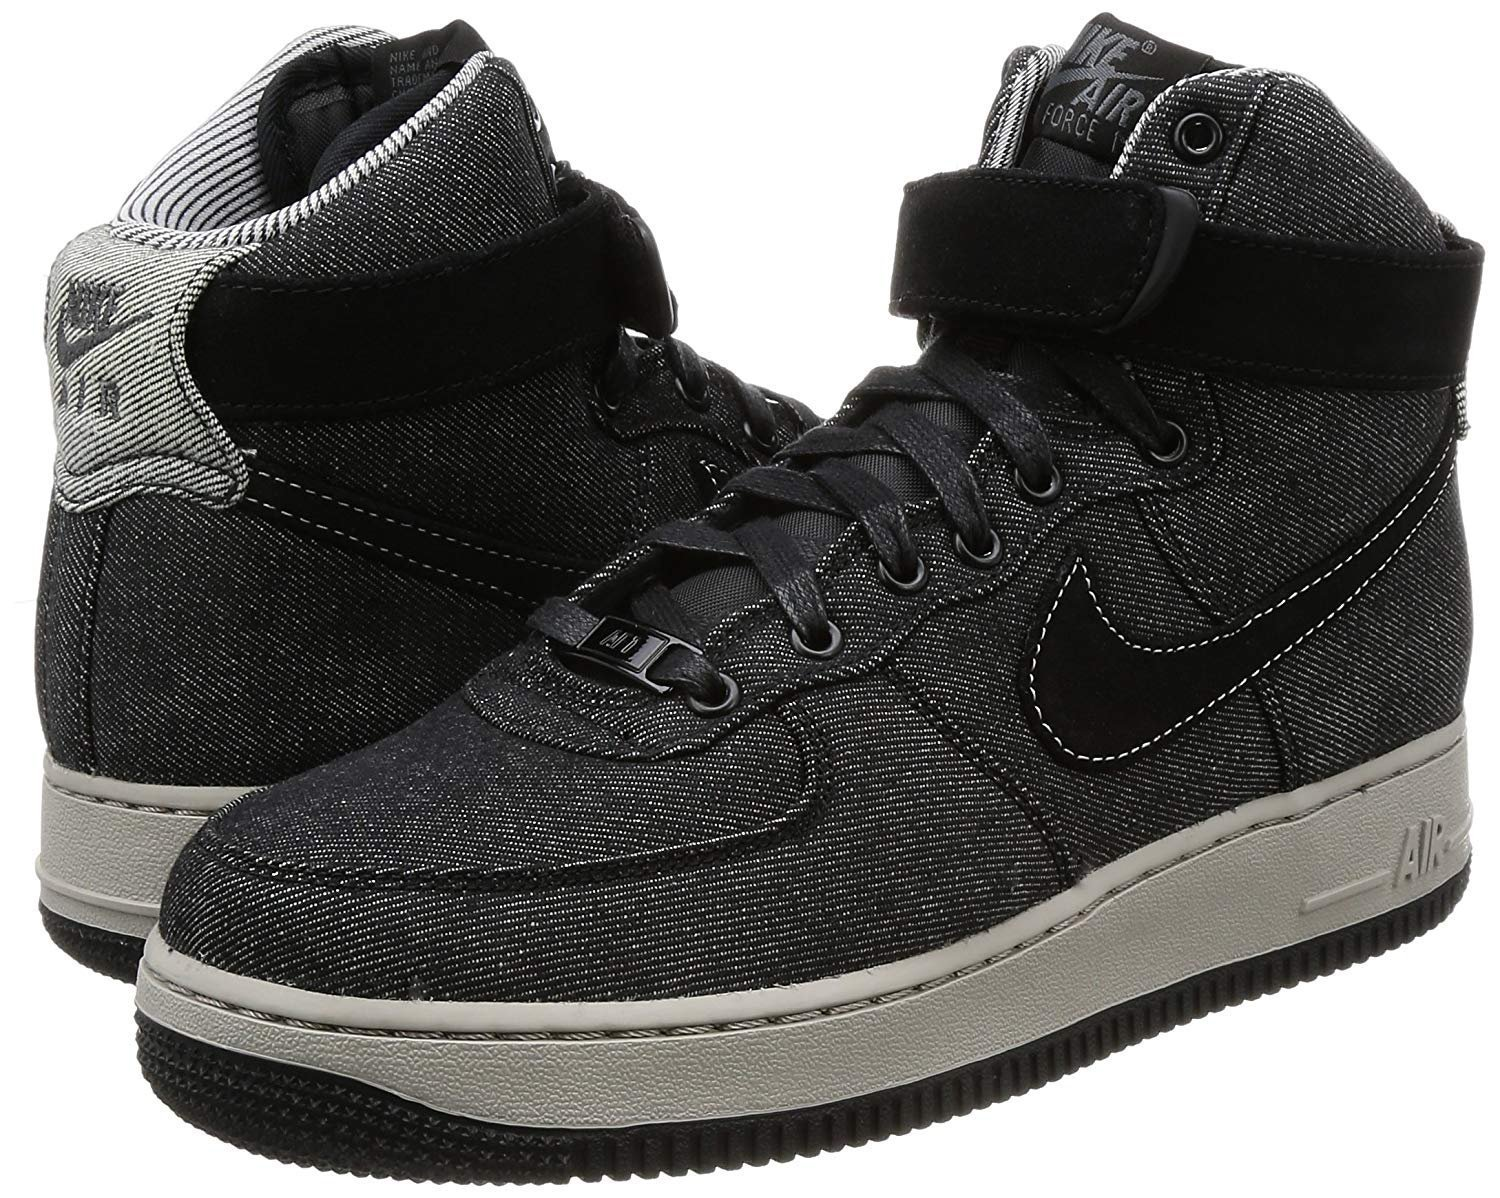 b8f8124aafa25 Galleon - Nike Women's Air Force 1 HI SE Black/Dark Grey-Cobble Stone  860544003 (5.5)